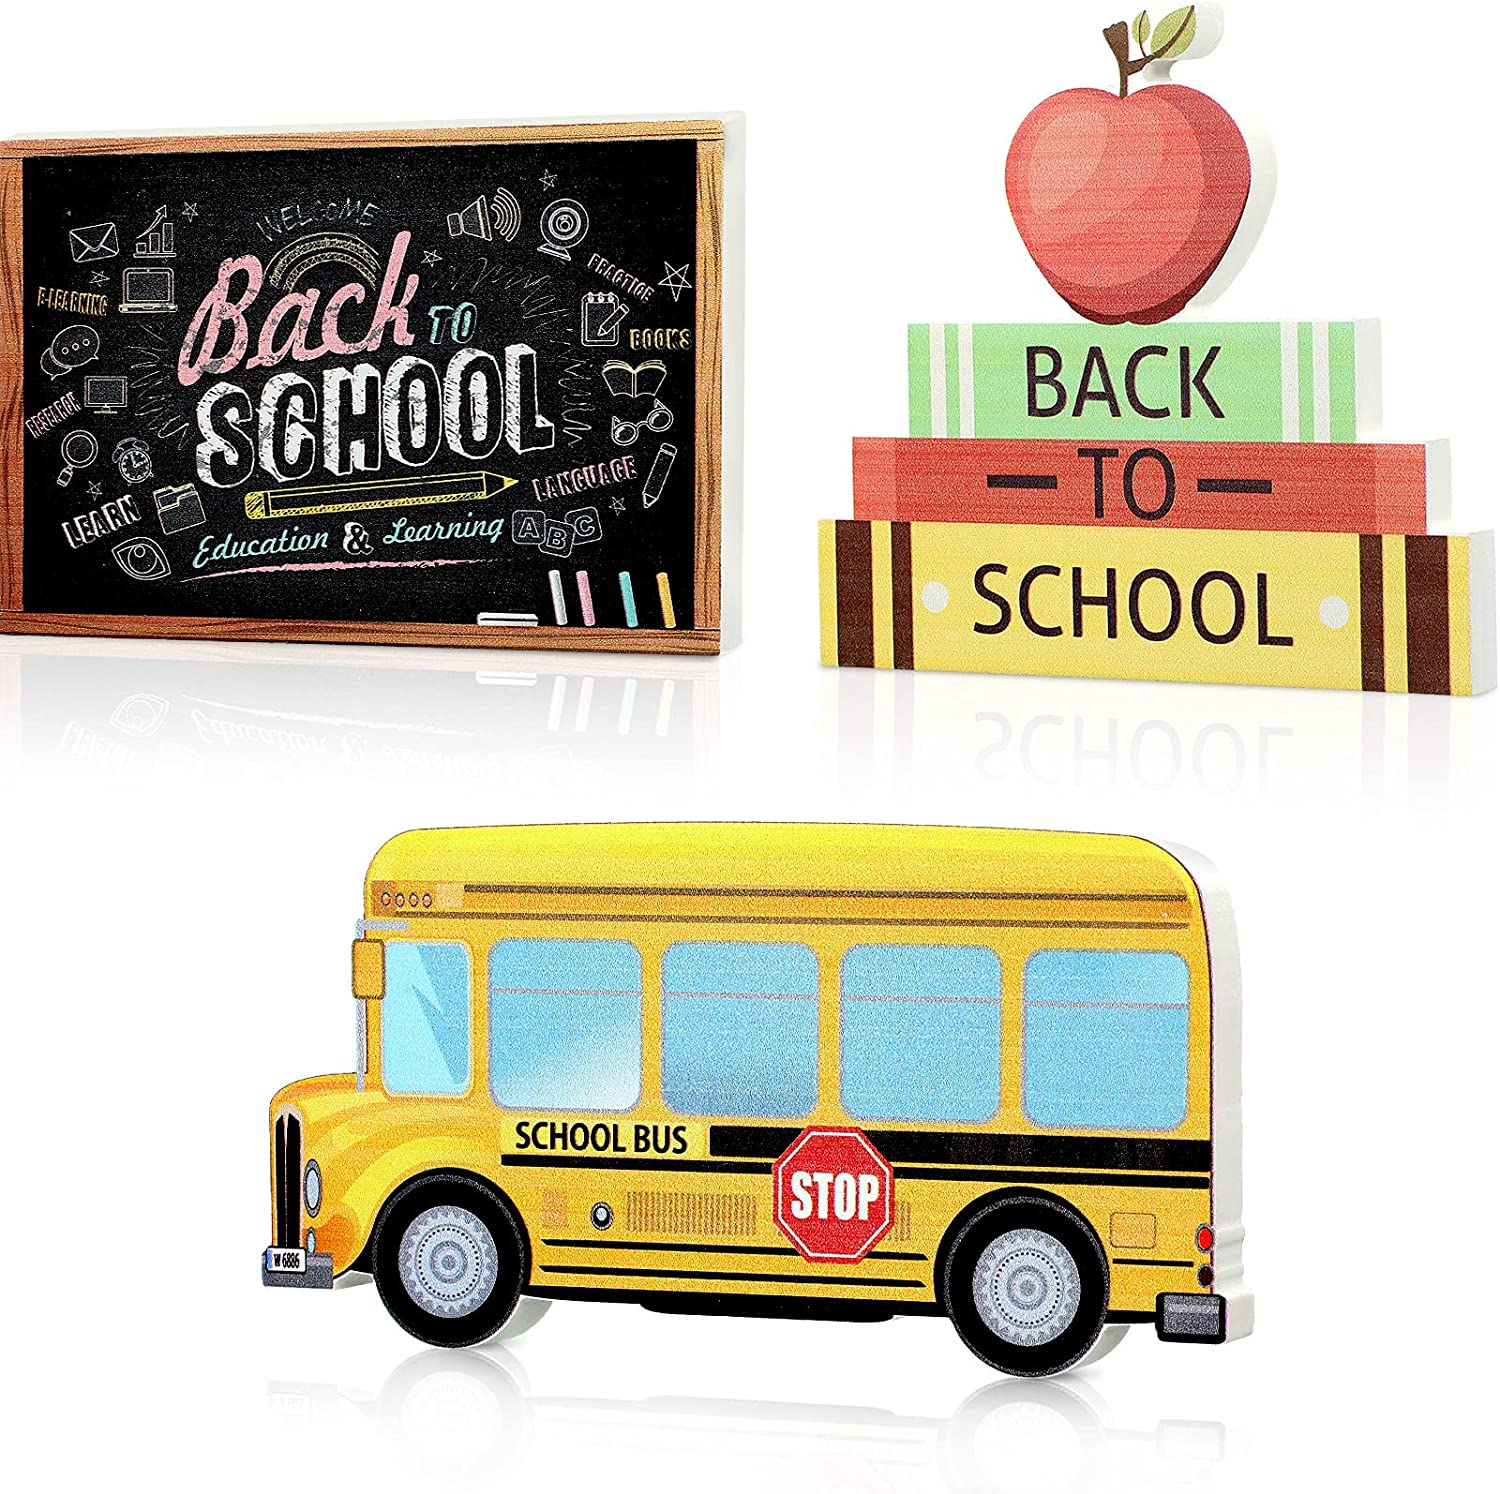 Back To School Decorations 3 Pieces Wooden Table Centerpiece Table Topper Sign for Teacher Appreciation First Day of School Decorations Back to School Party Decorations Supplies Classroom School Decor